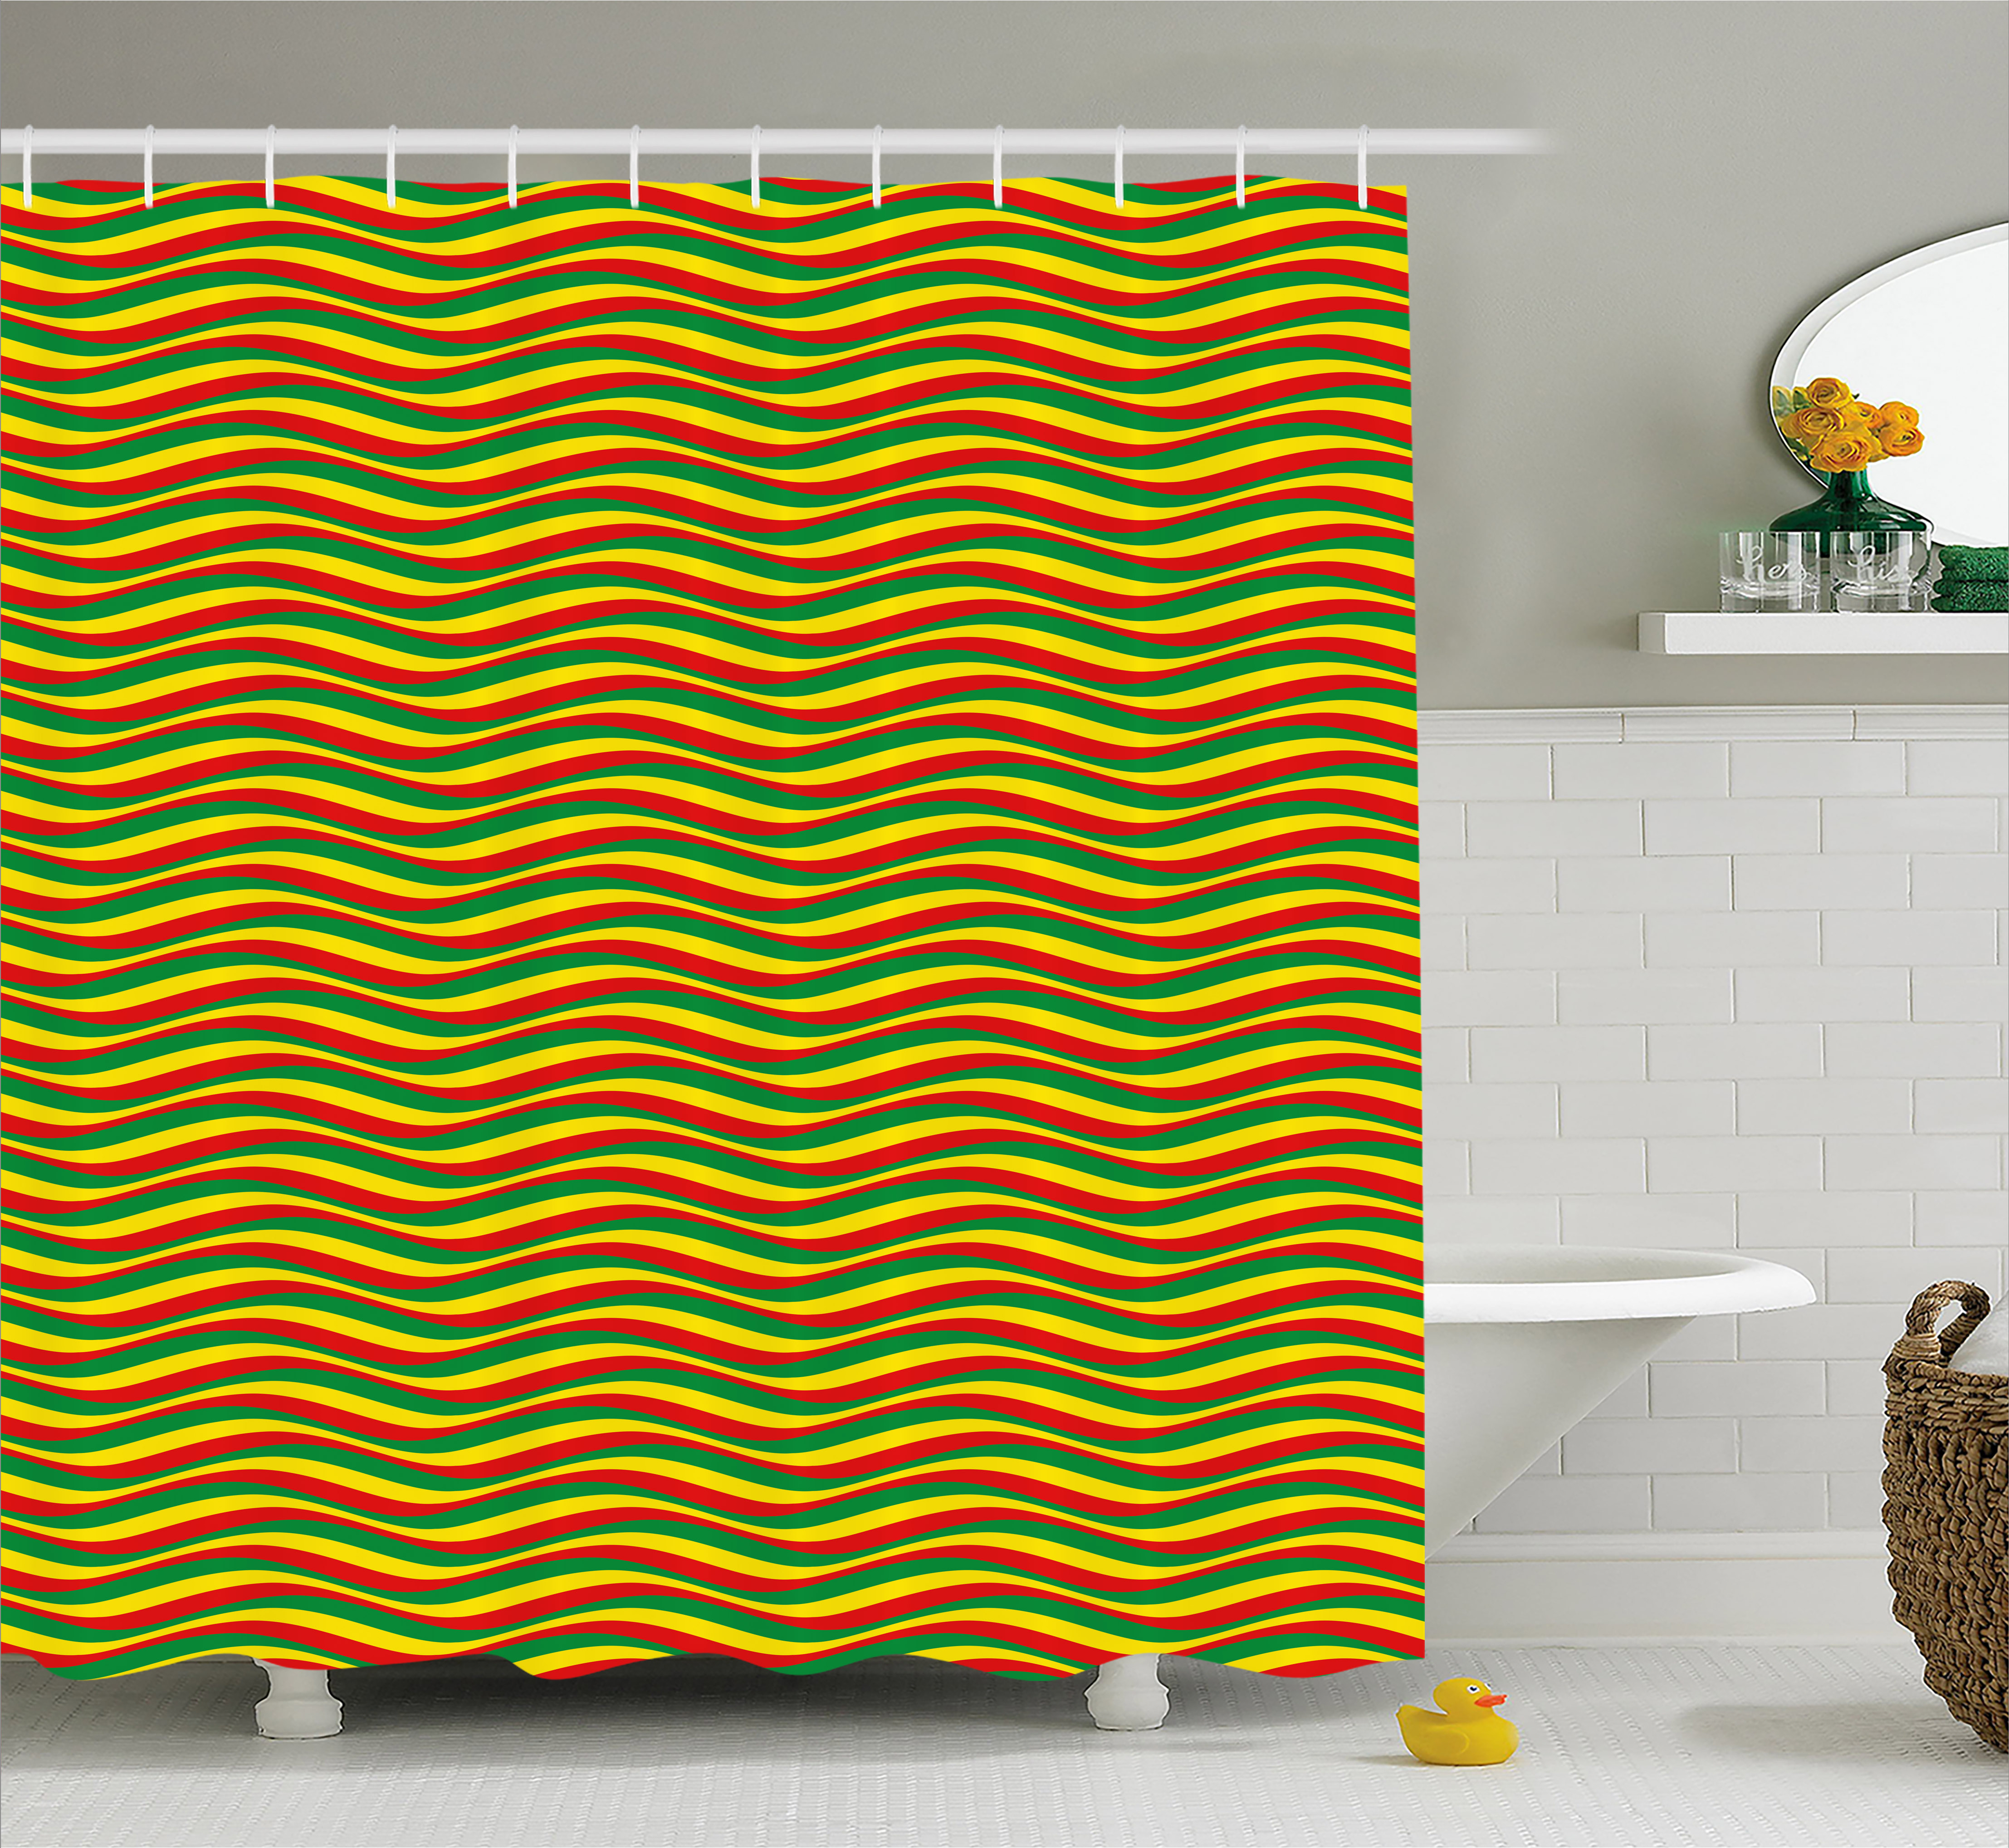 Rasta Shower Curtain, Vivid Colors Ethiopian African Flag Colors In Wavy  Style Stripes Image,